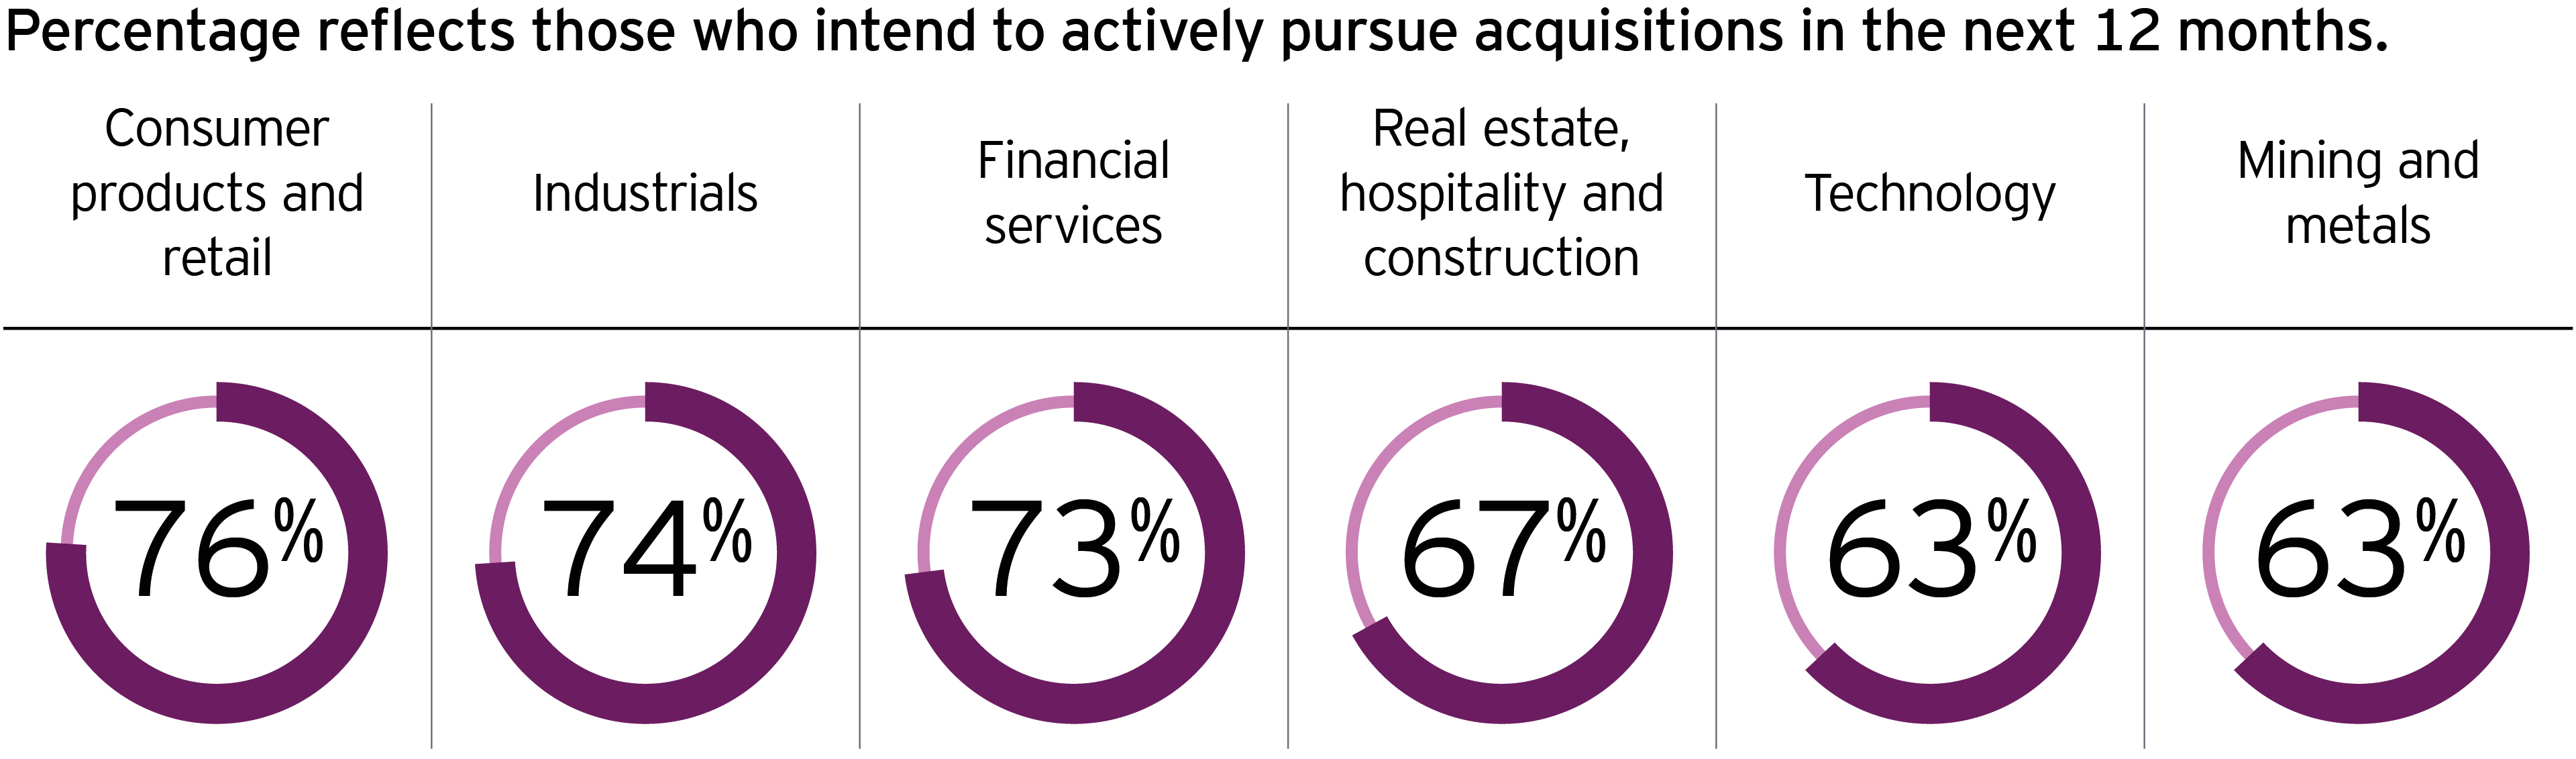 actively persue acquisitions in next 12 months